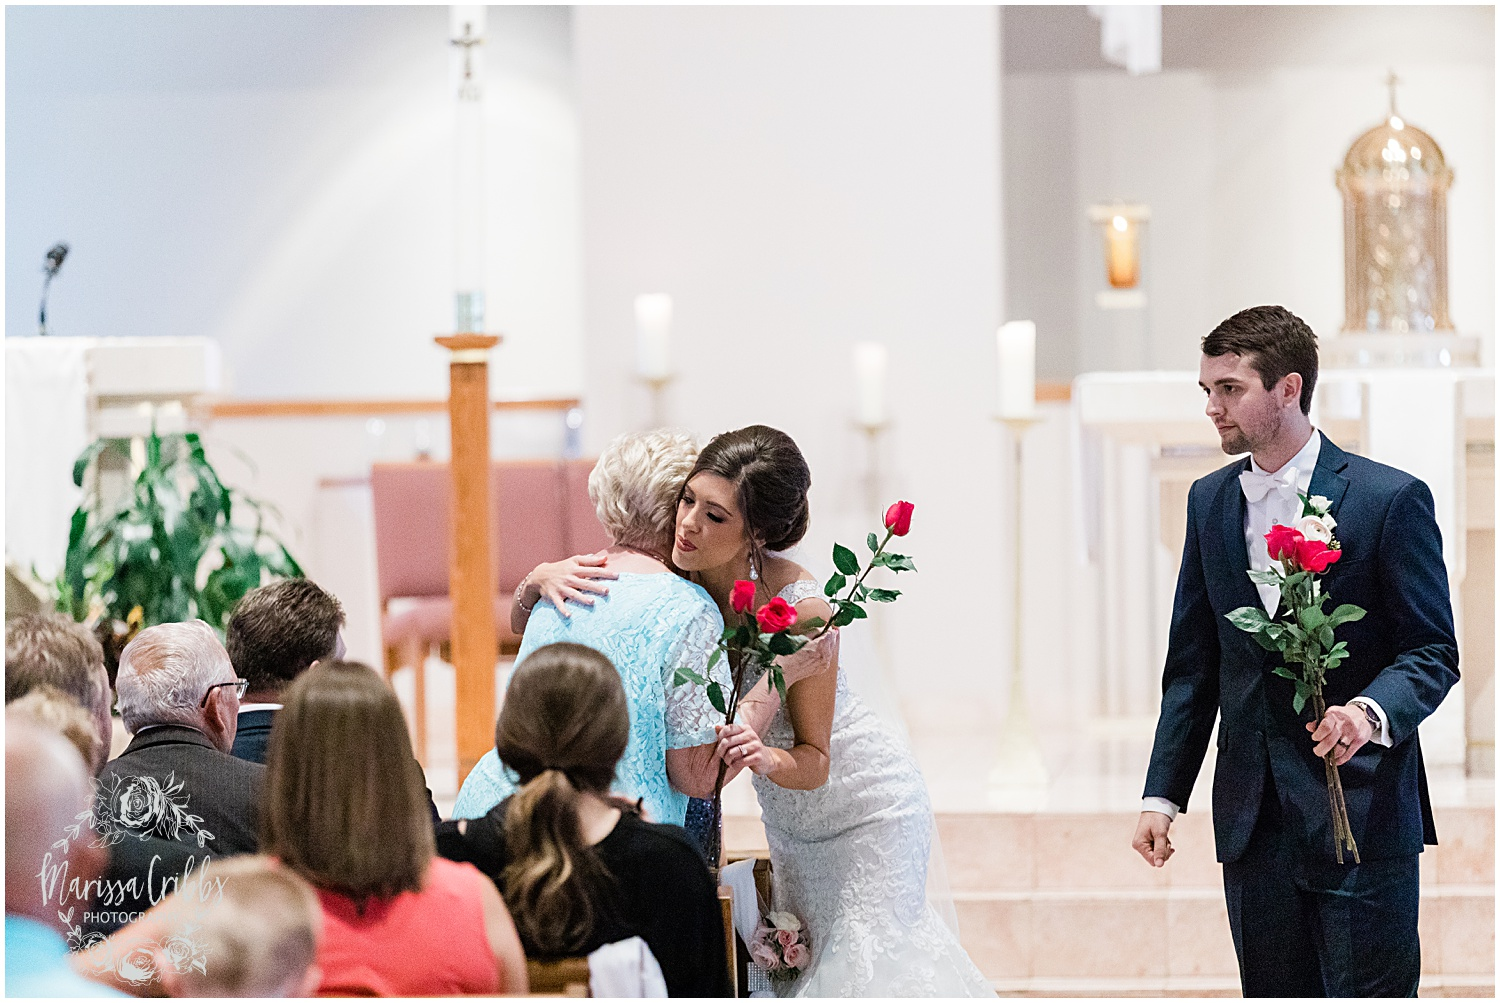 MEGAN & DEREK WEDDING BLOG | MARISSA CRIBBS PHOTOGRAPHY_8138.jpg